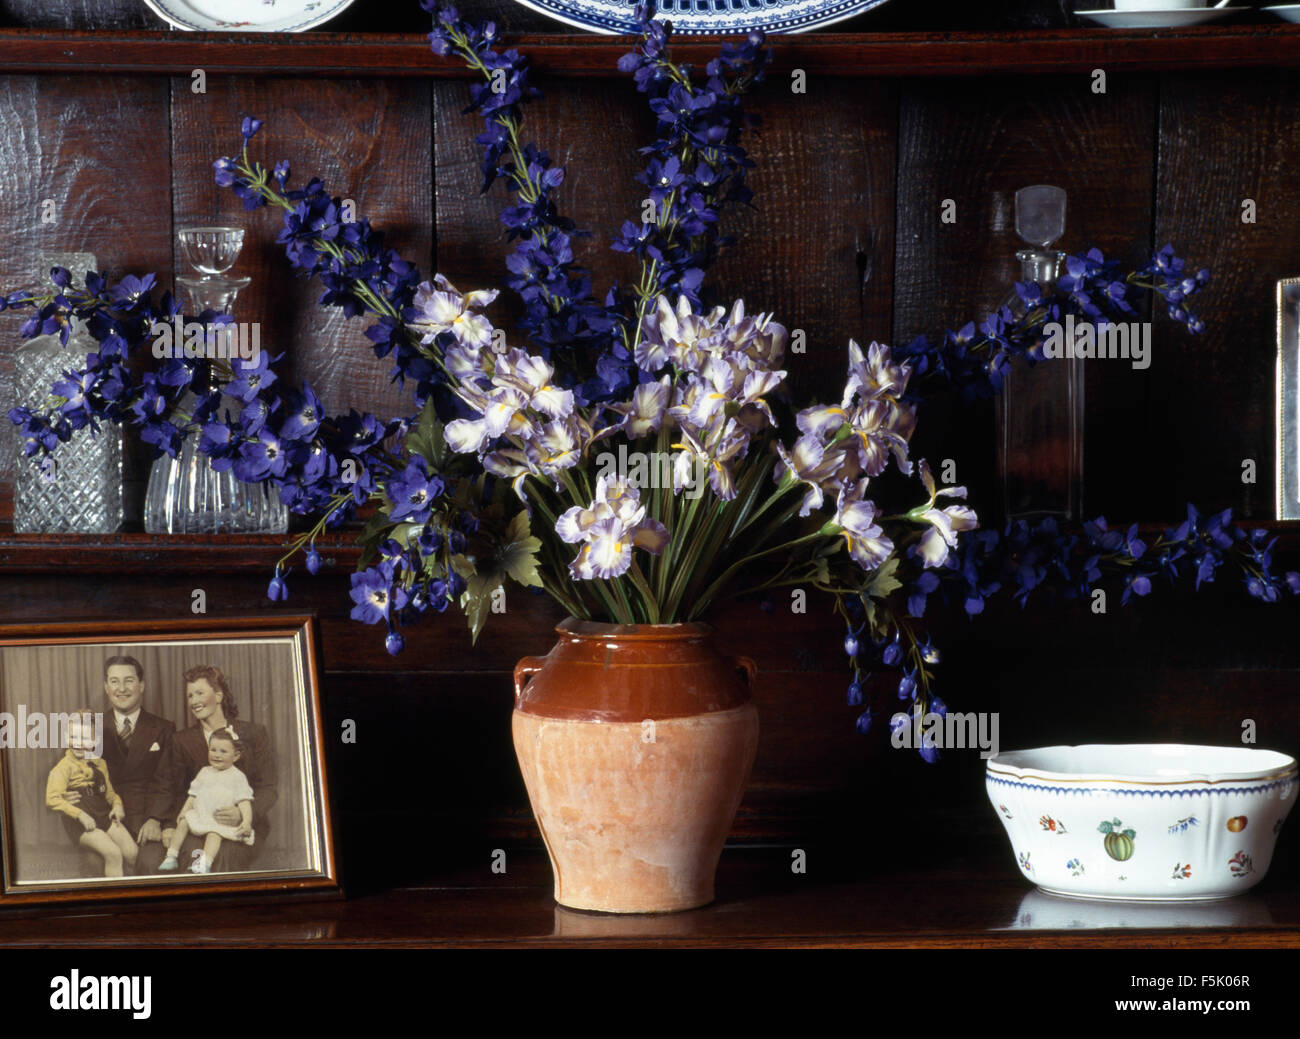 Close-up of a shelf vase of blue delphiniums and old black+white photograph - Stock Image